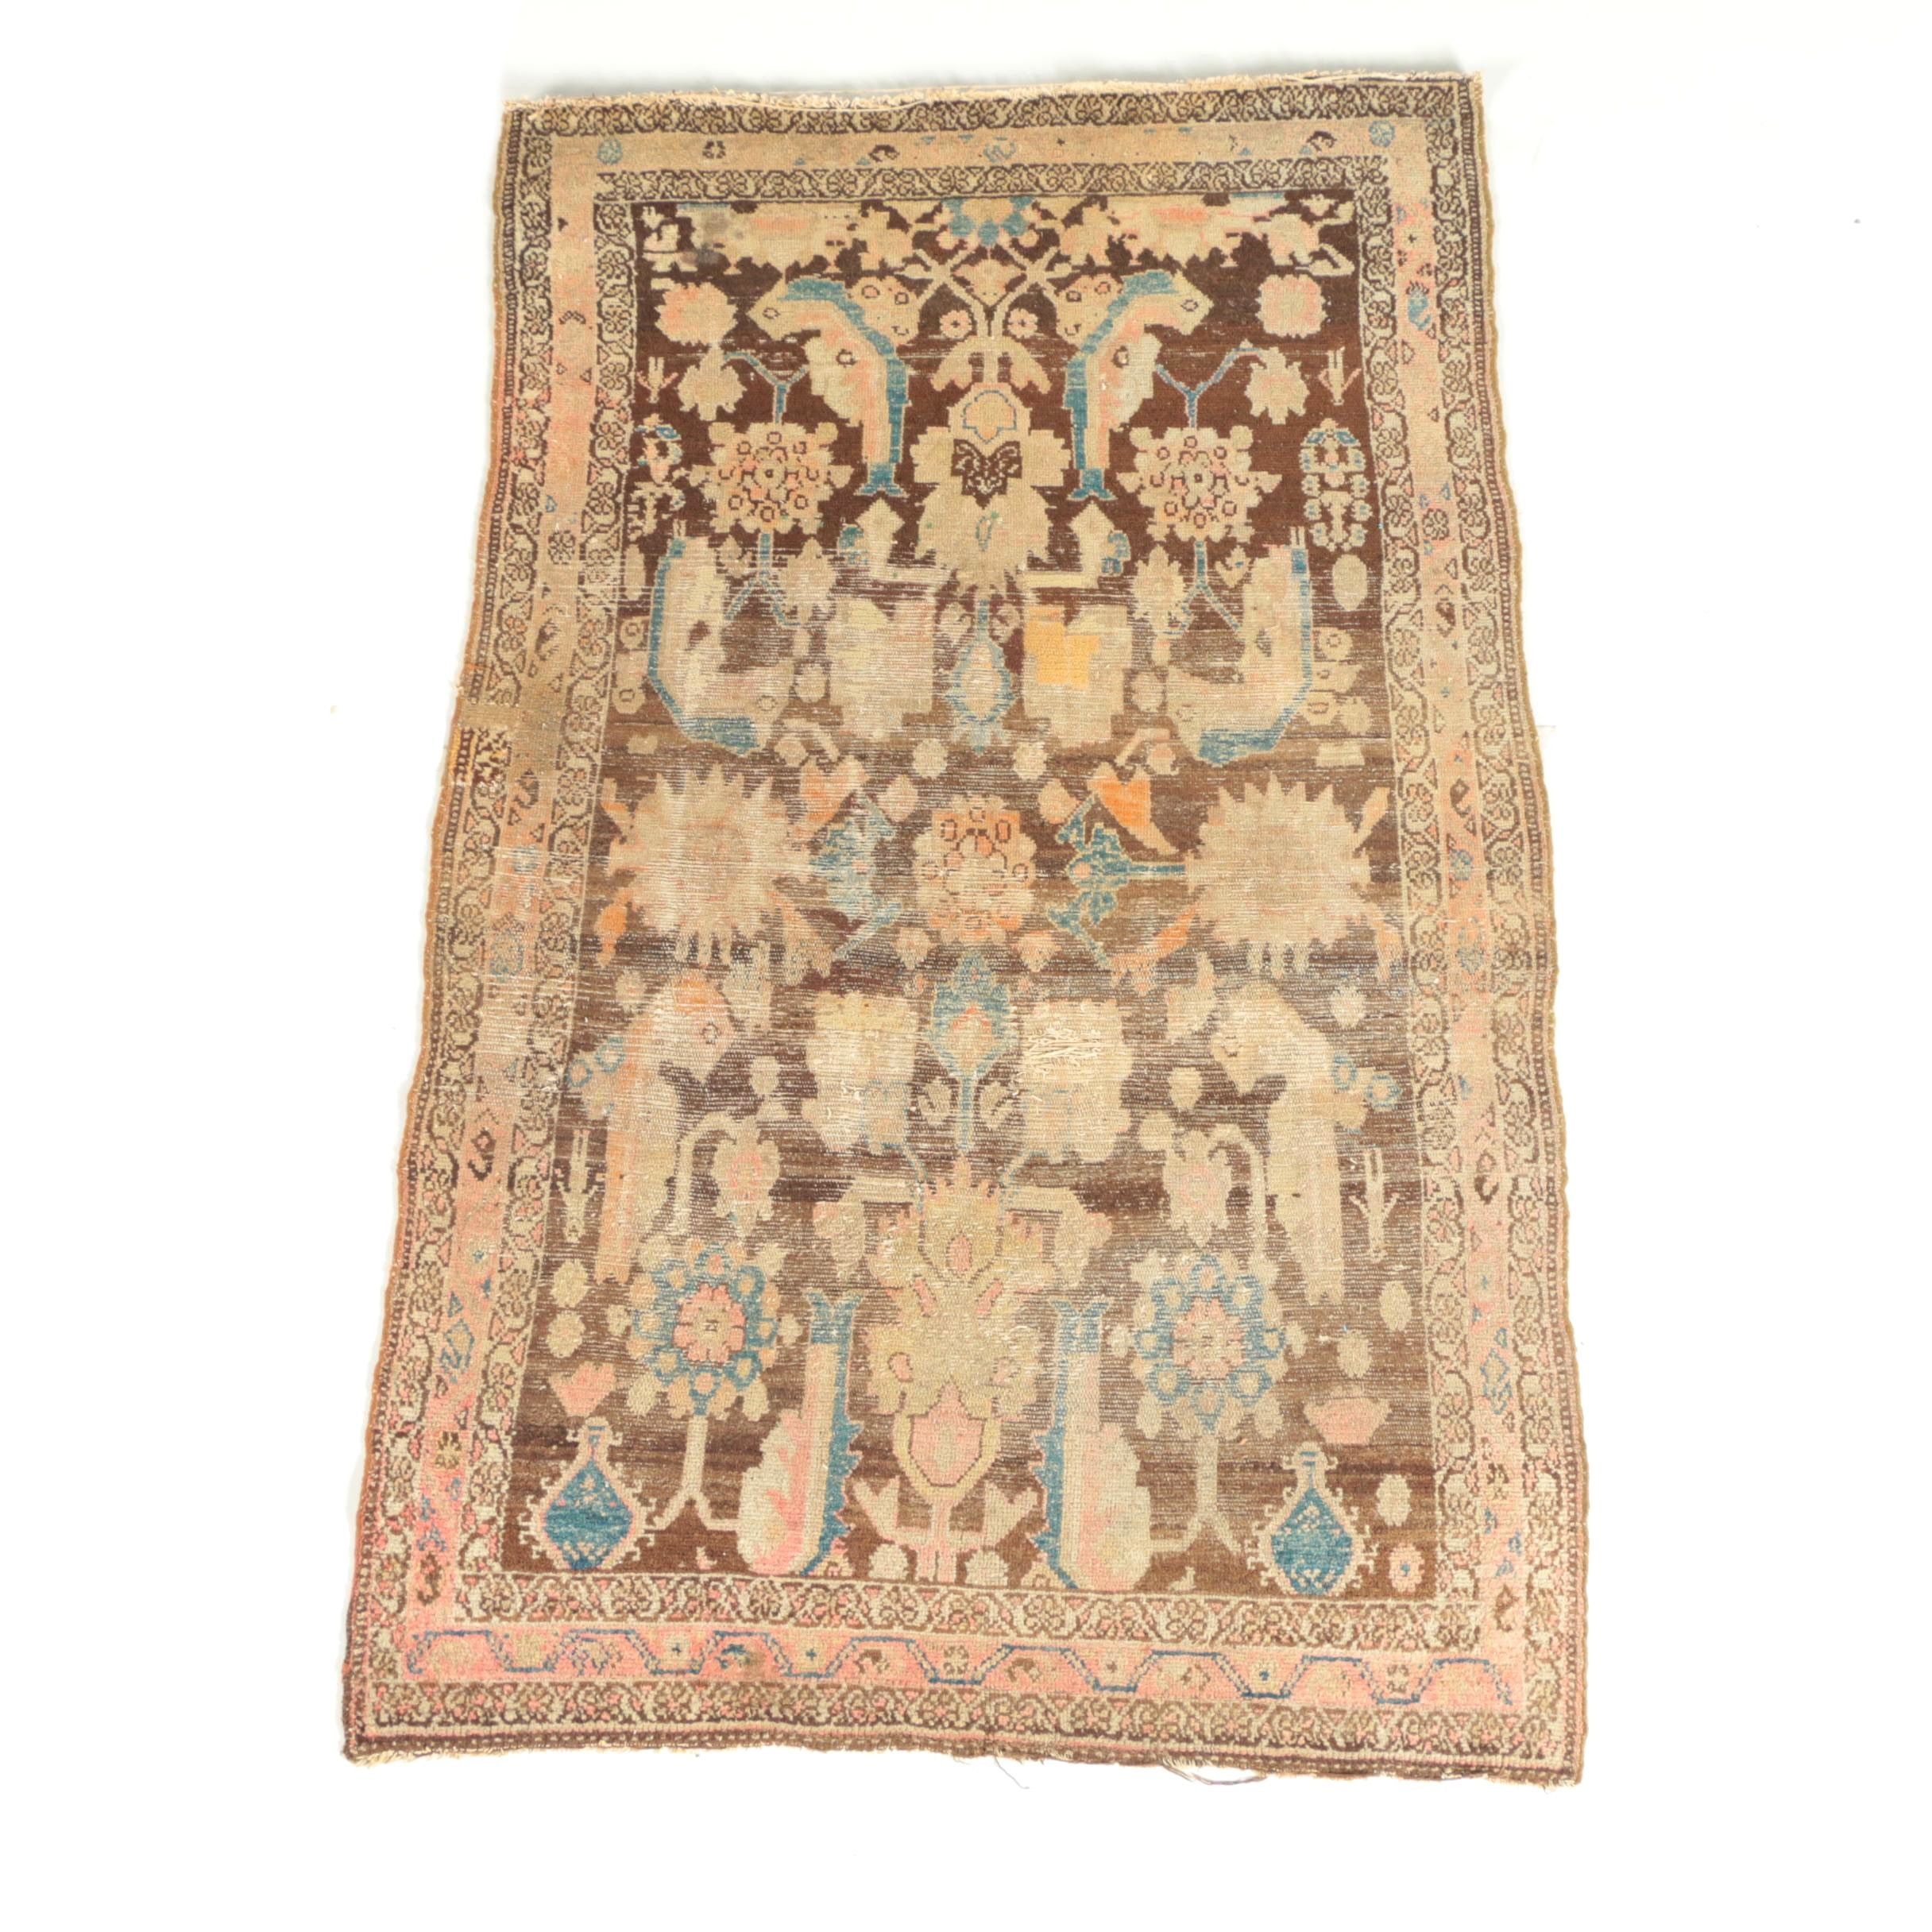 Antique Hand-Knotted Persian Hamadan Area Rug